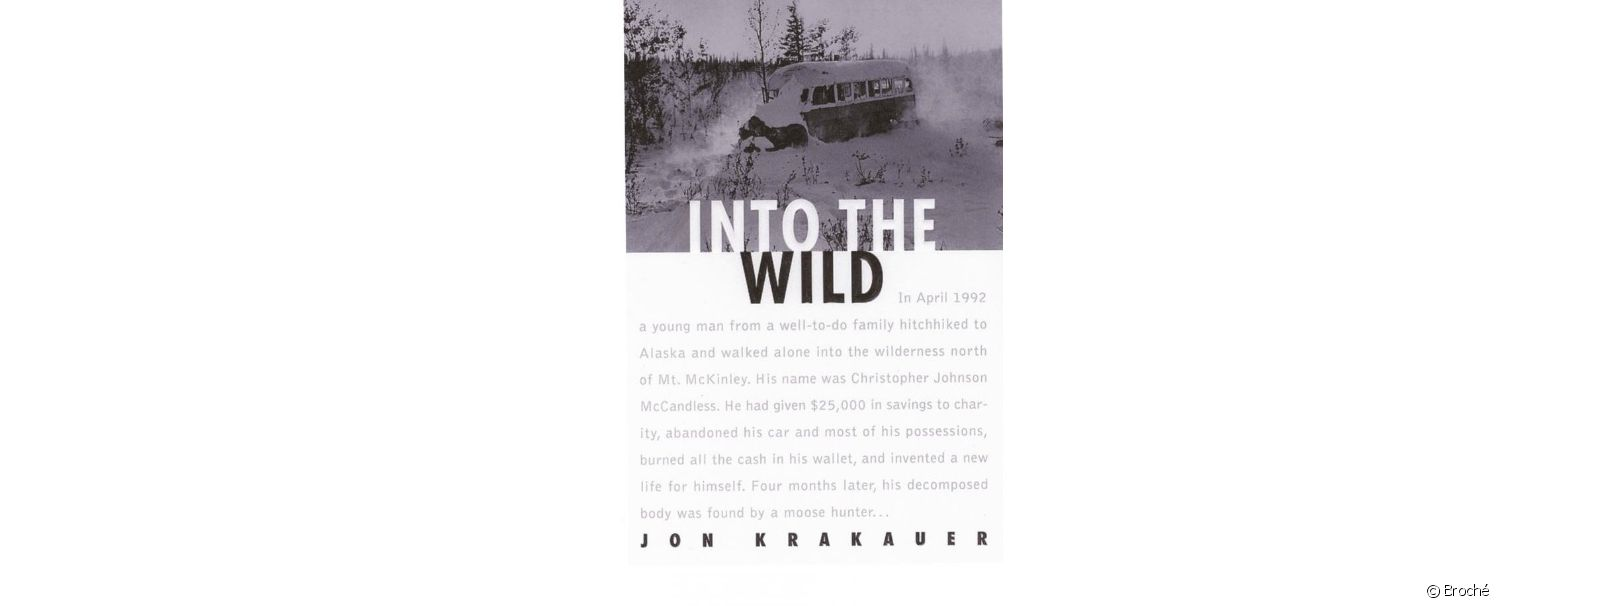 Voyage au bout de la solitude (Into the wild)